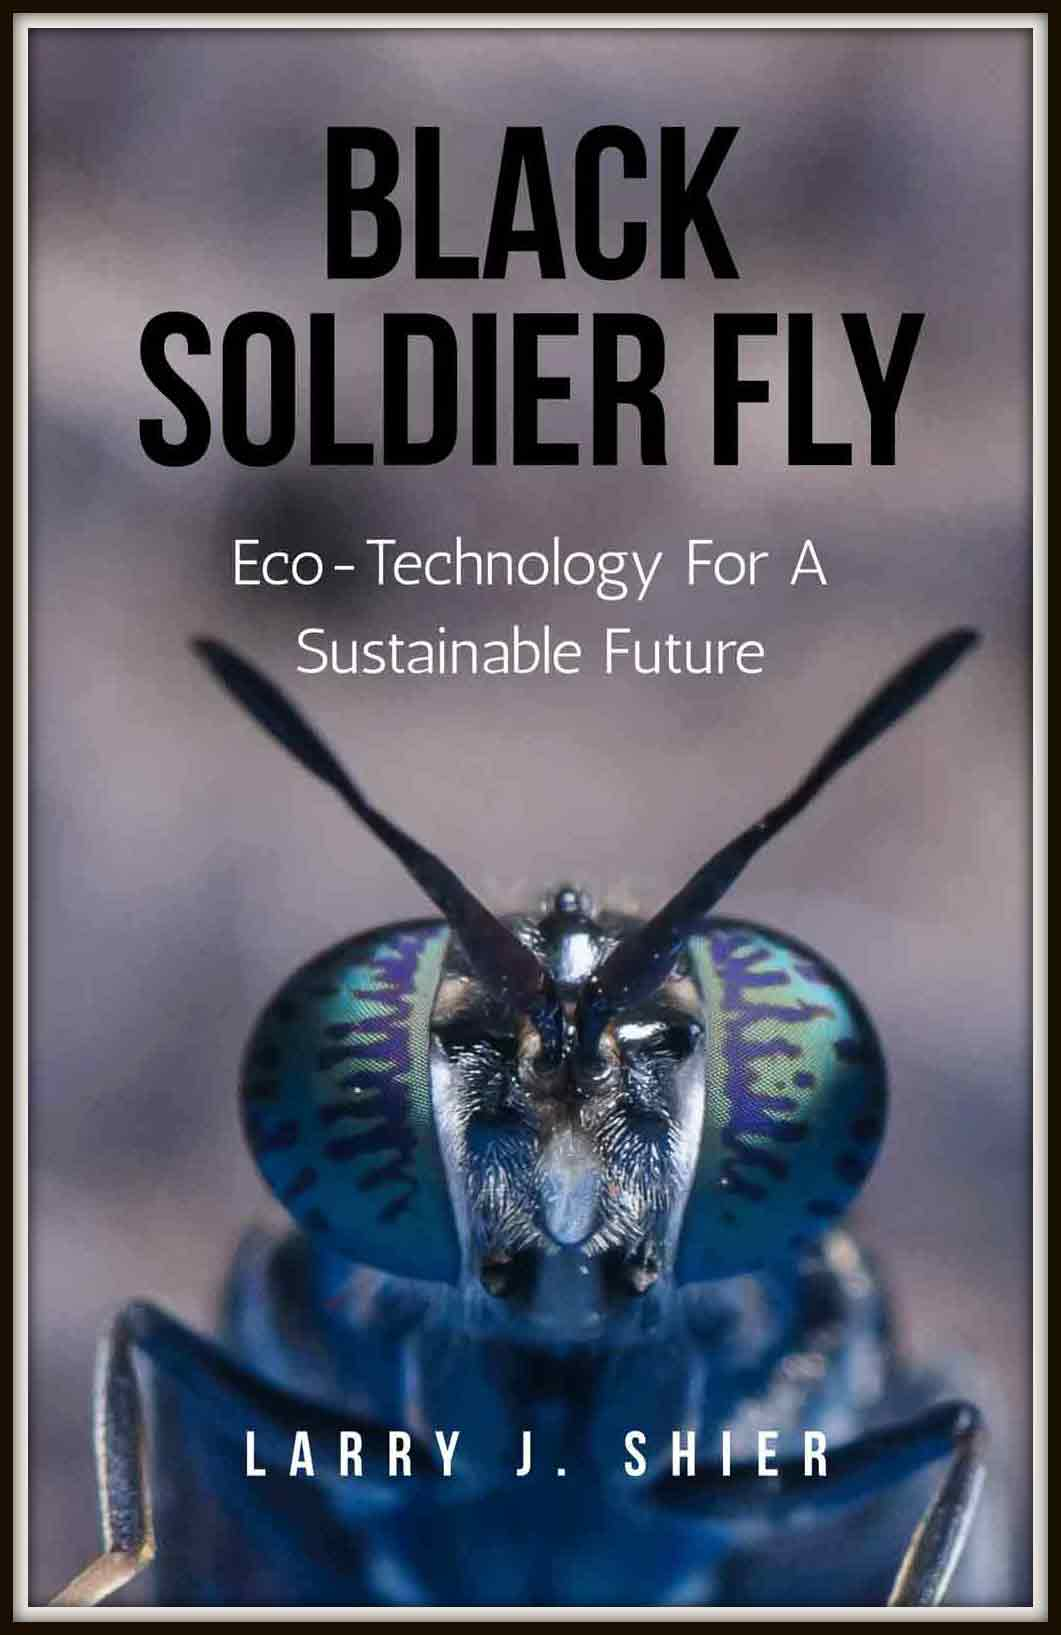 Black Soldier Fly - Eco-Technology For A Sustainable Future